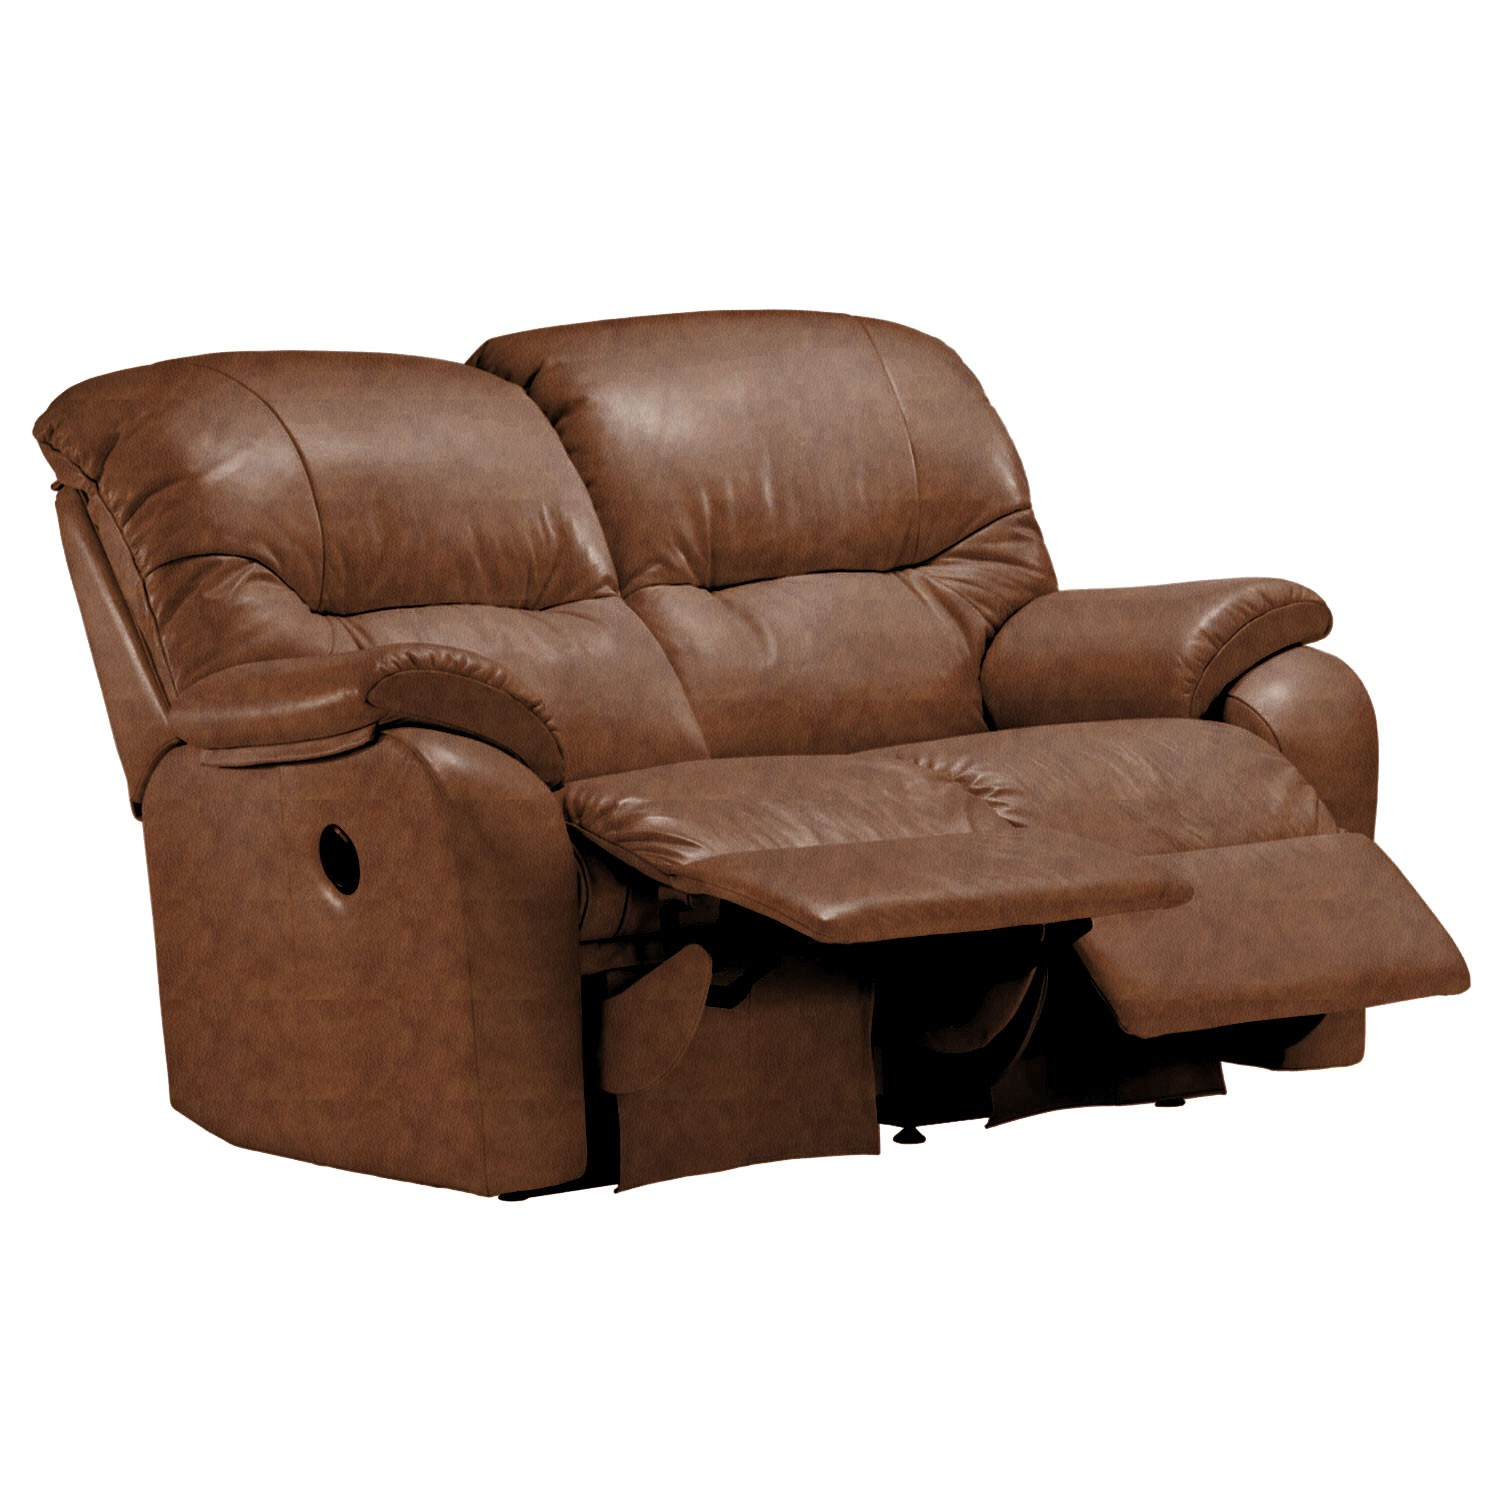 2 seater power recliner sofa slipcover diy g plan mistral two double